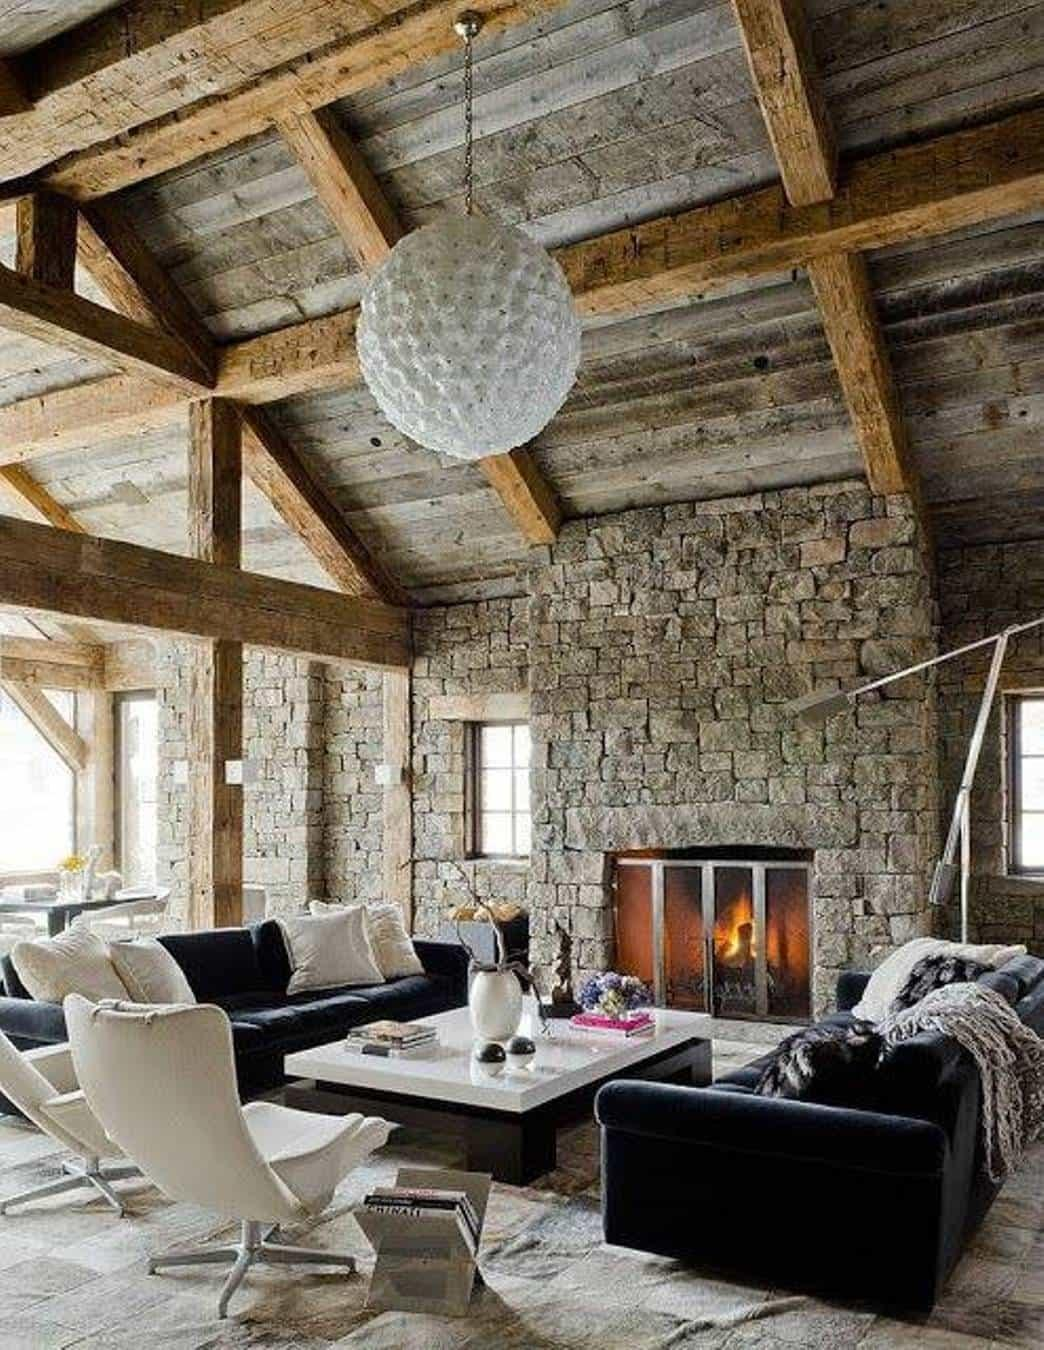 Home Design Exposed Wooden Ceiling Beams Above Stone